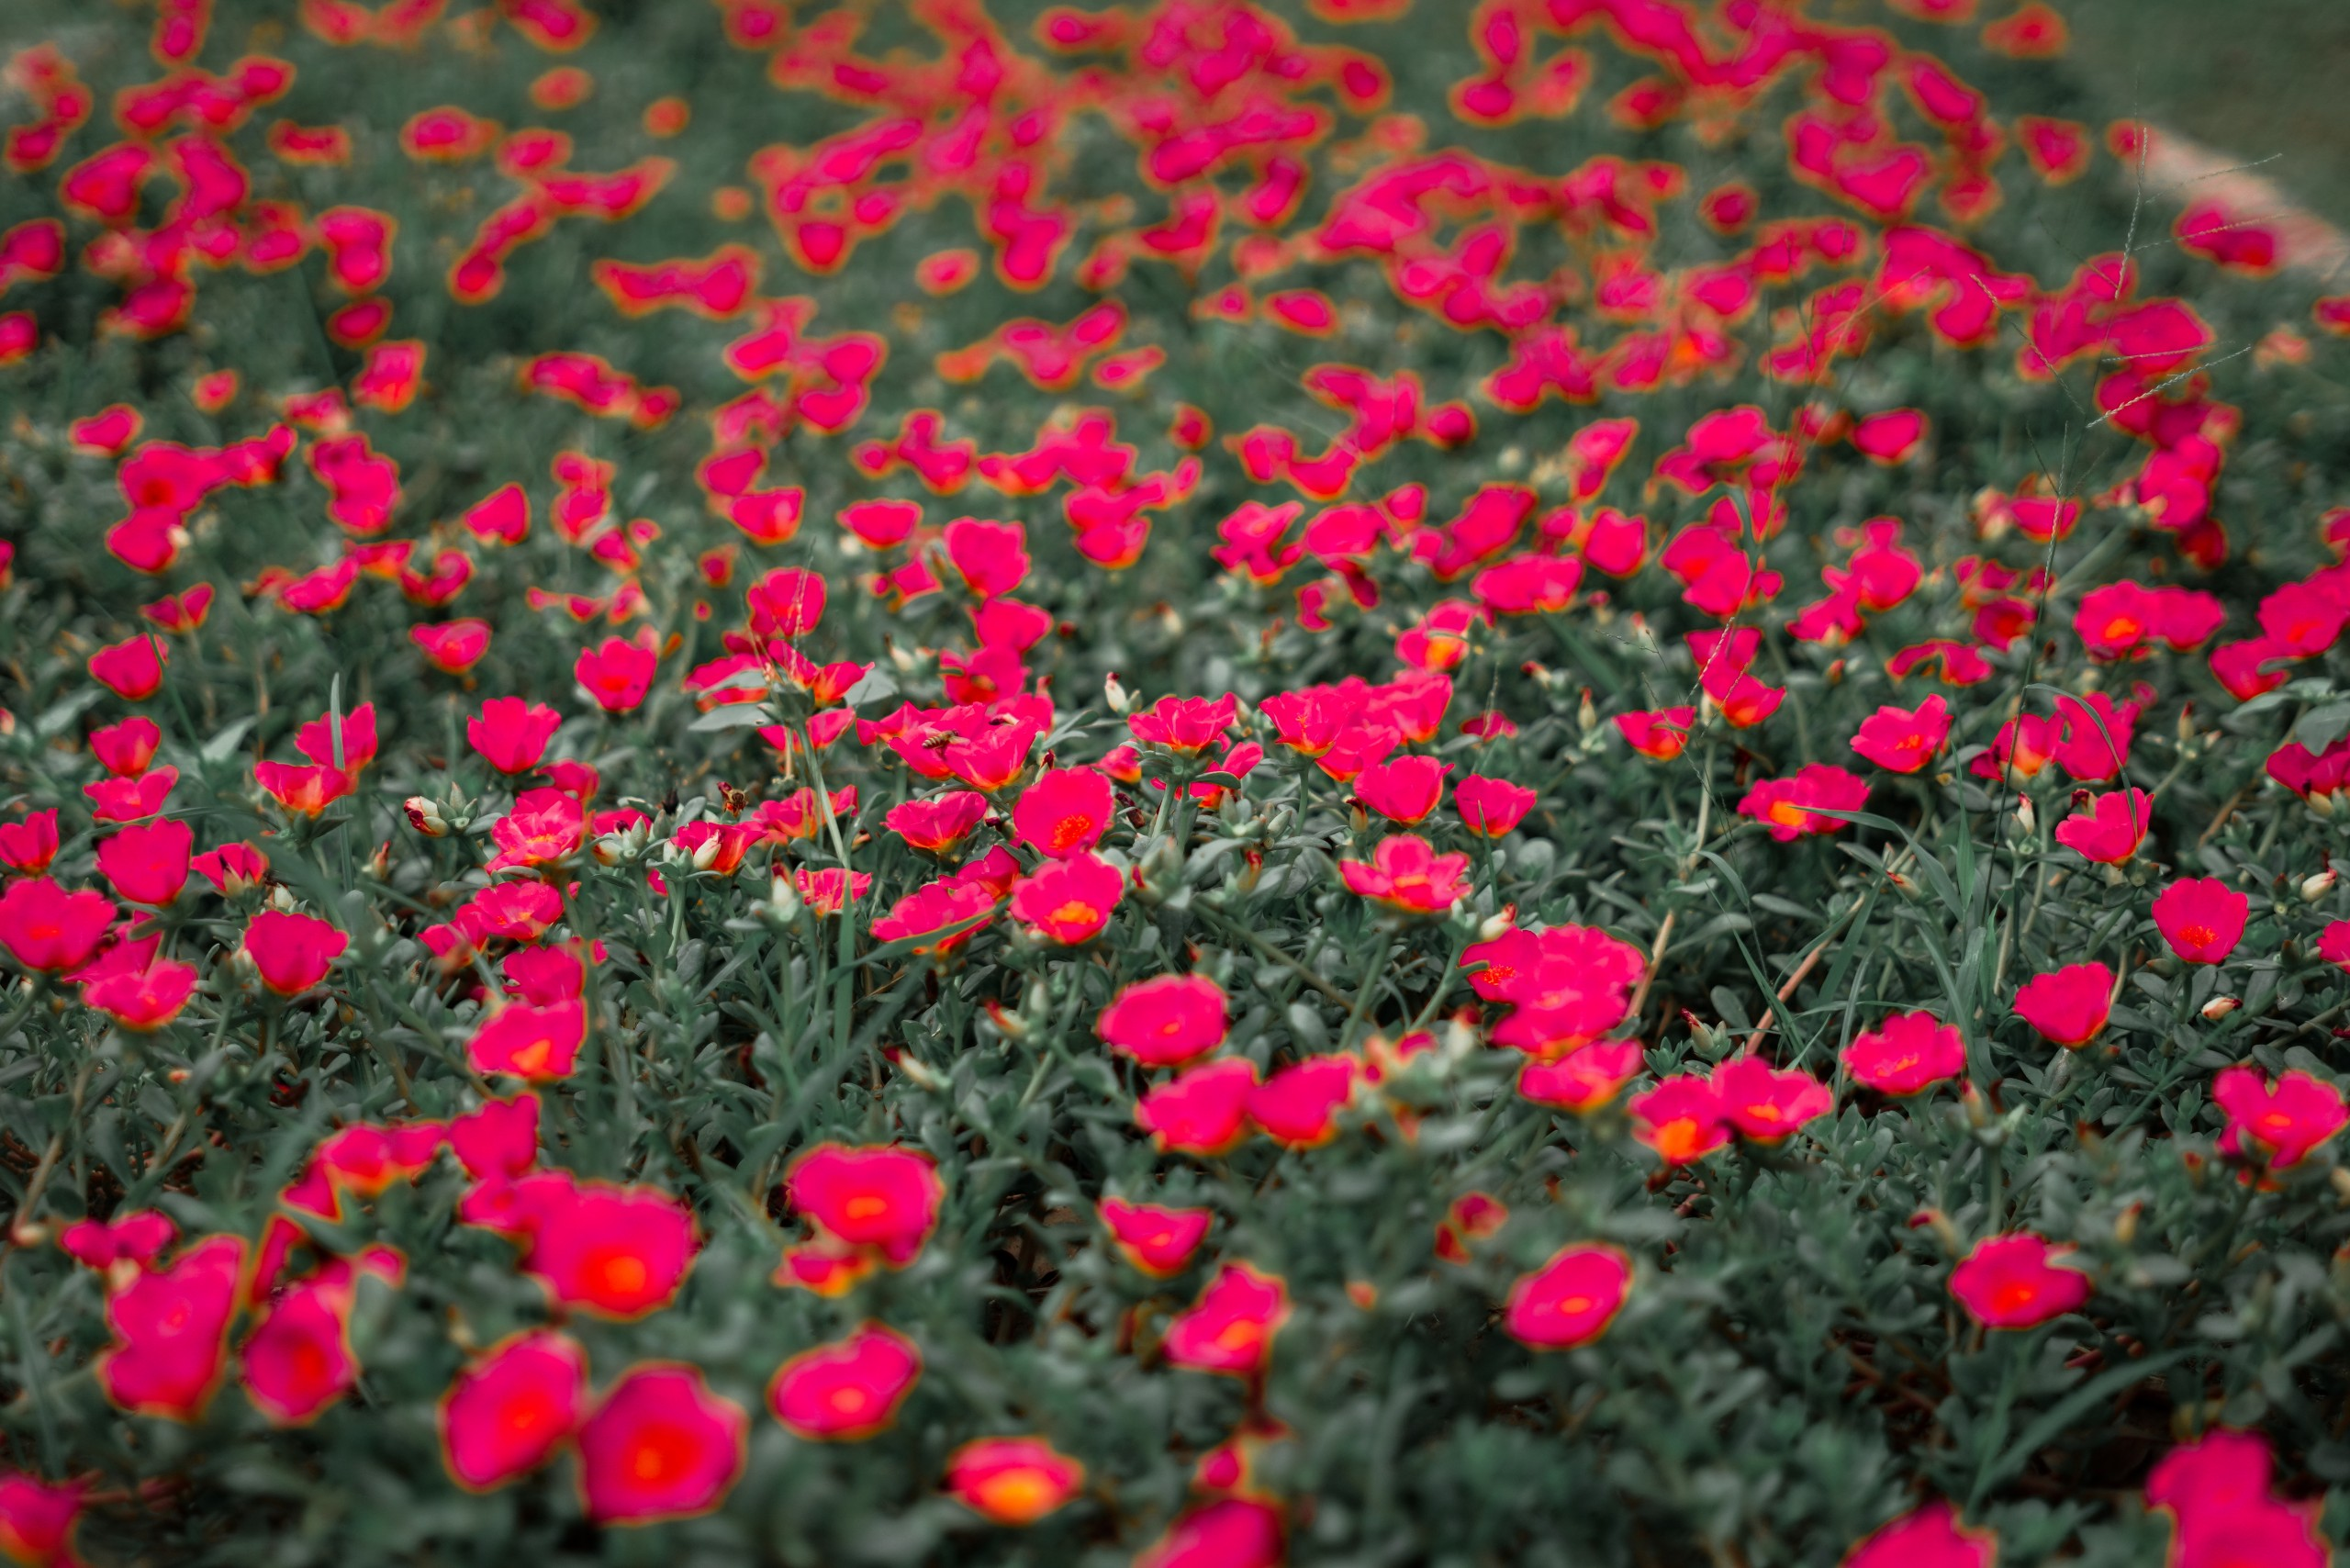 Red Flowers in Grey Background